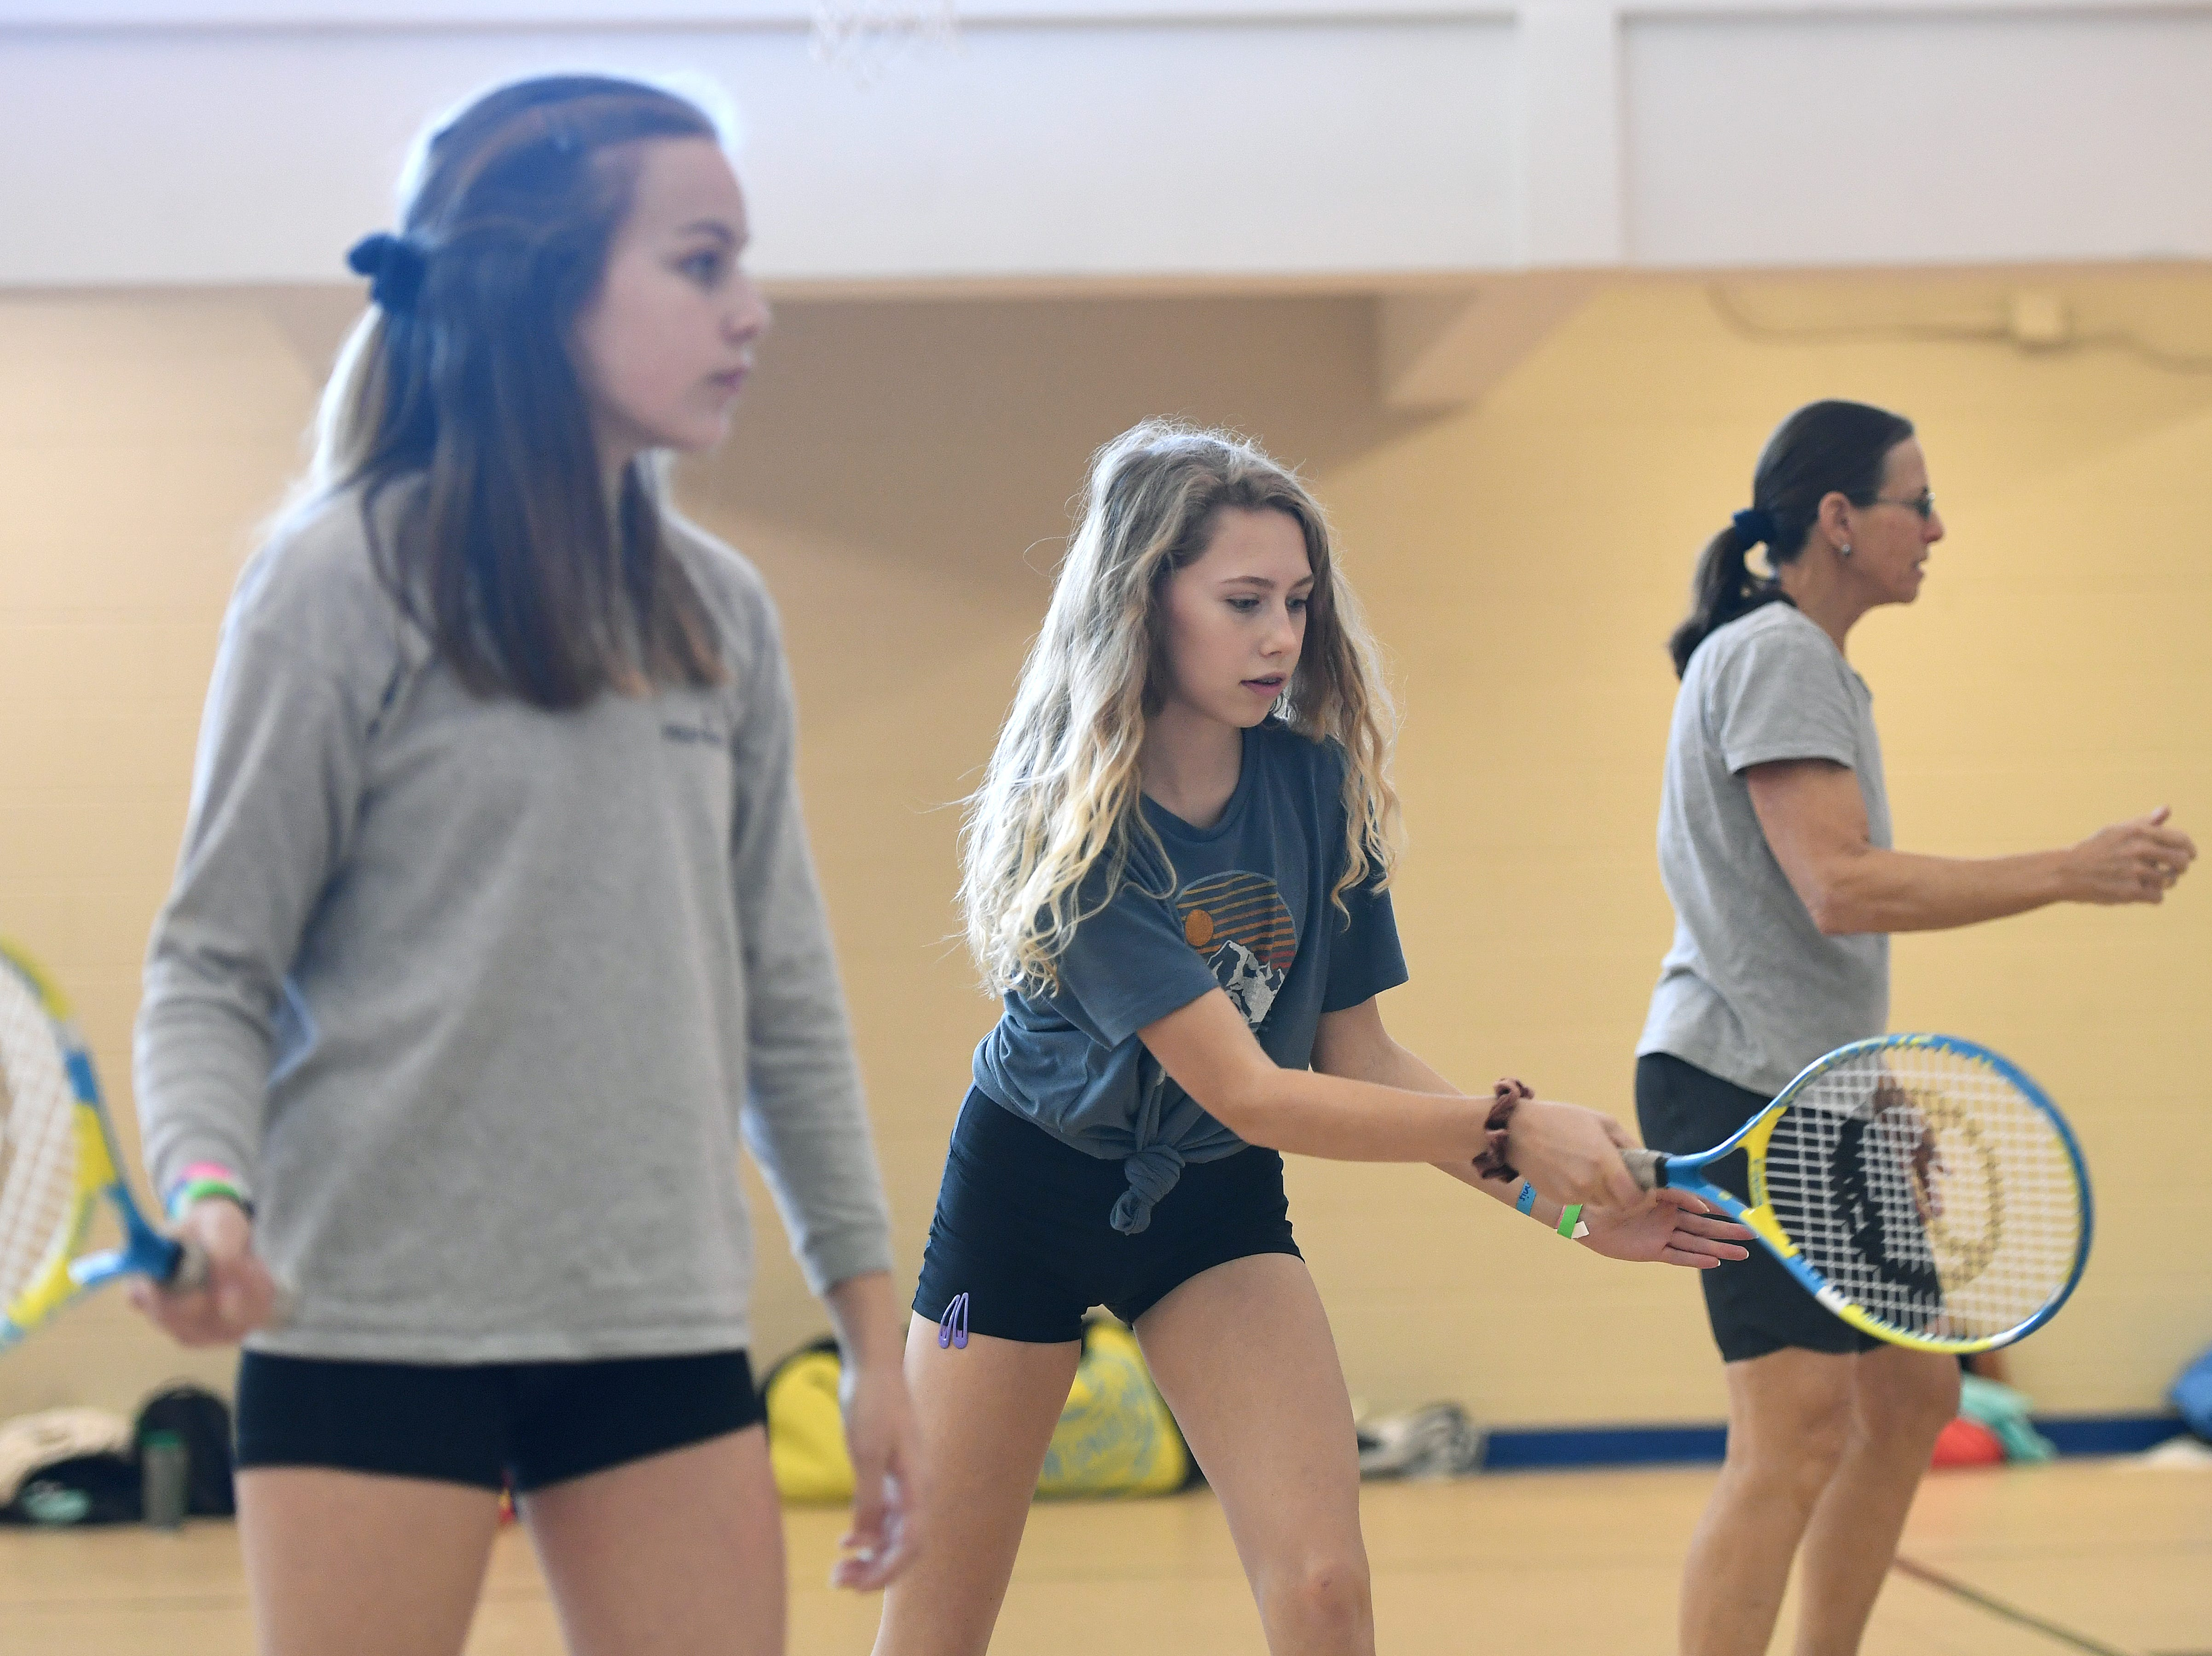 Girls had a chance to try their hand at new sports during the National Girls and Women in Sports Day hosted by Asheville Parks and Recreation and Buncombe County Recreation Services at UNC Asheville on Feb. 16, 2019.